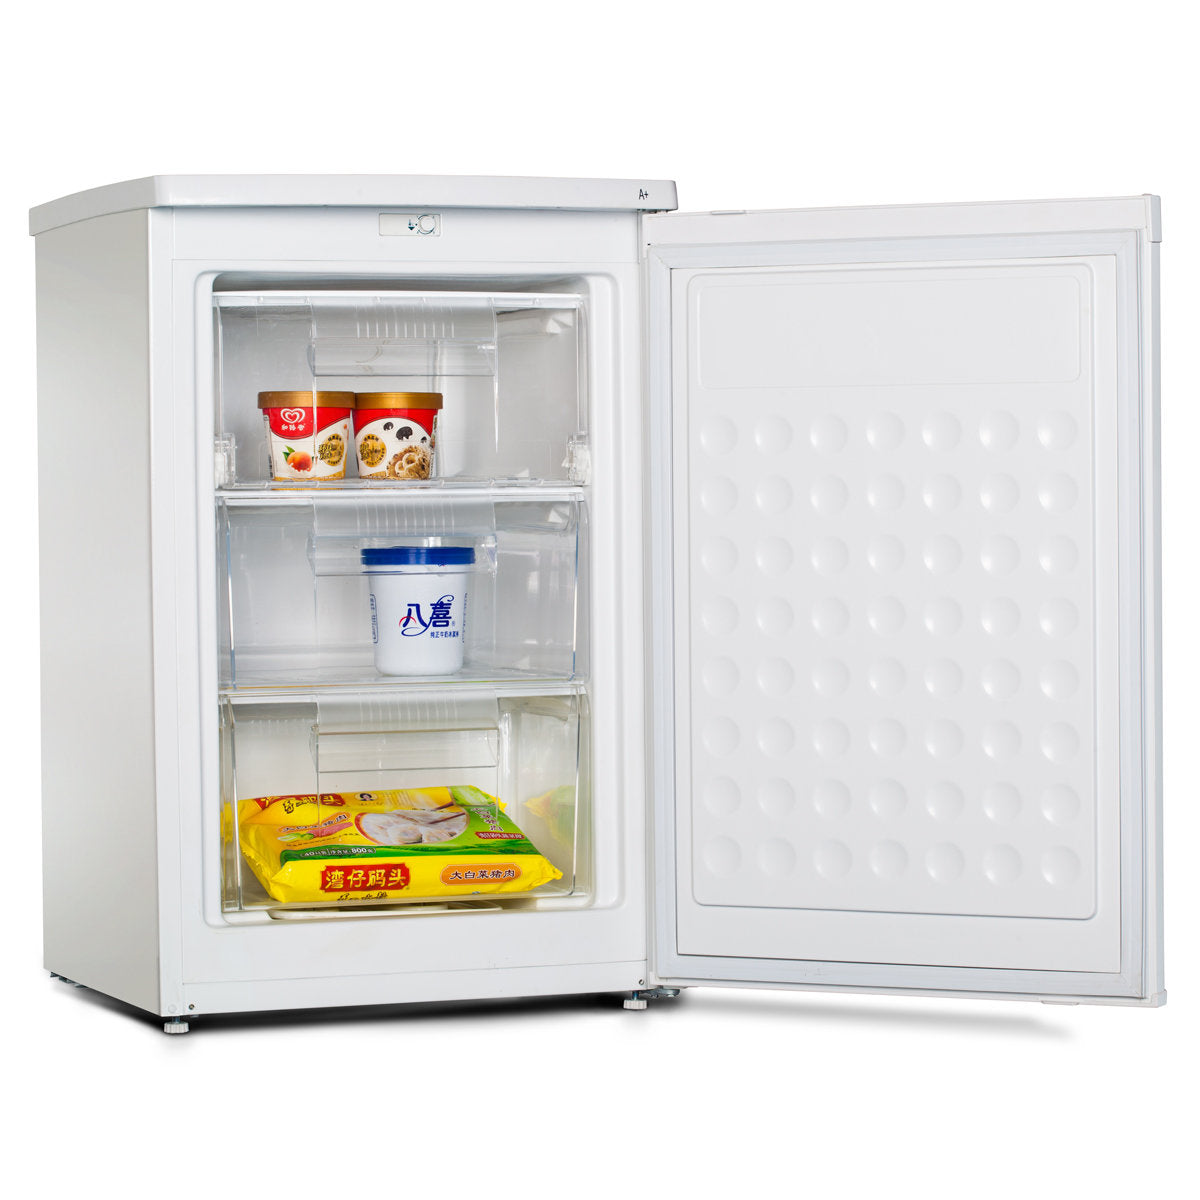 CHiQ 89L Upright Freezer (Brand New) - Brisbane Home Appliances